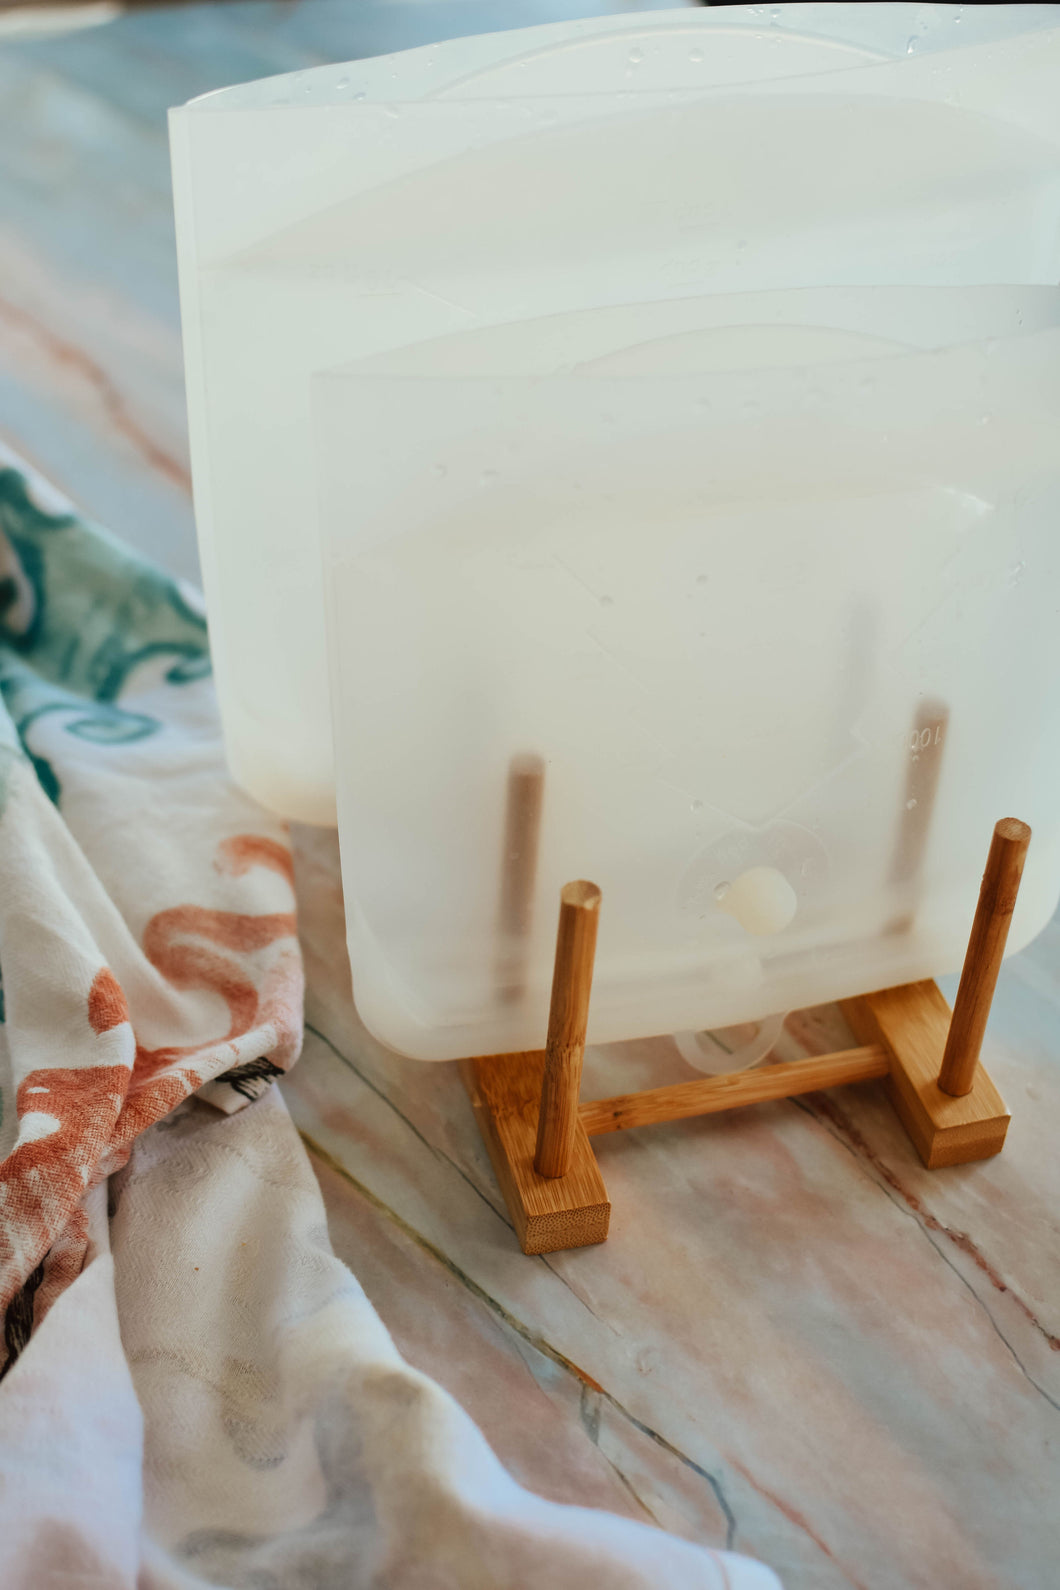 Drying Rack - Small